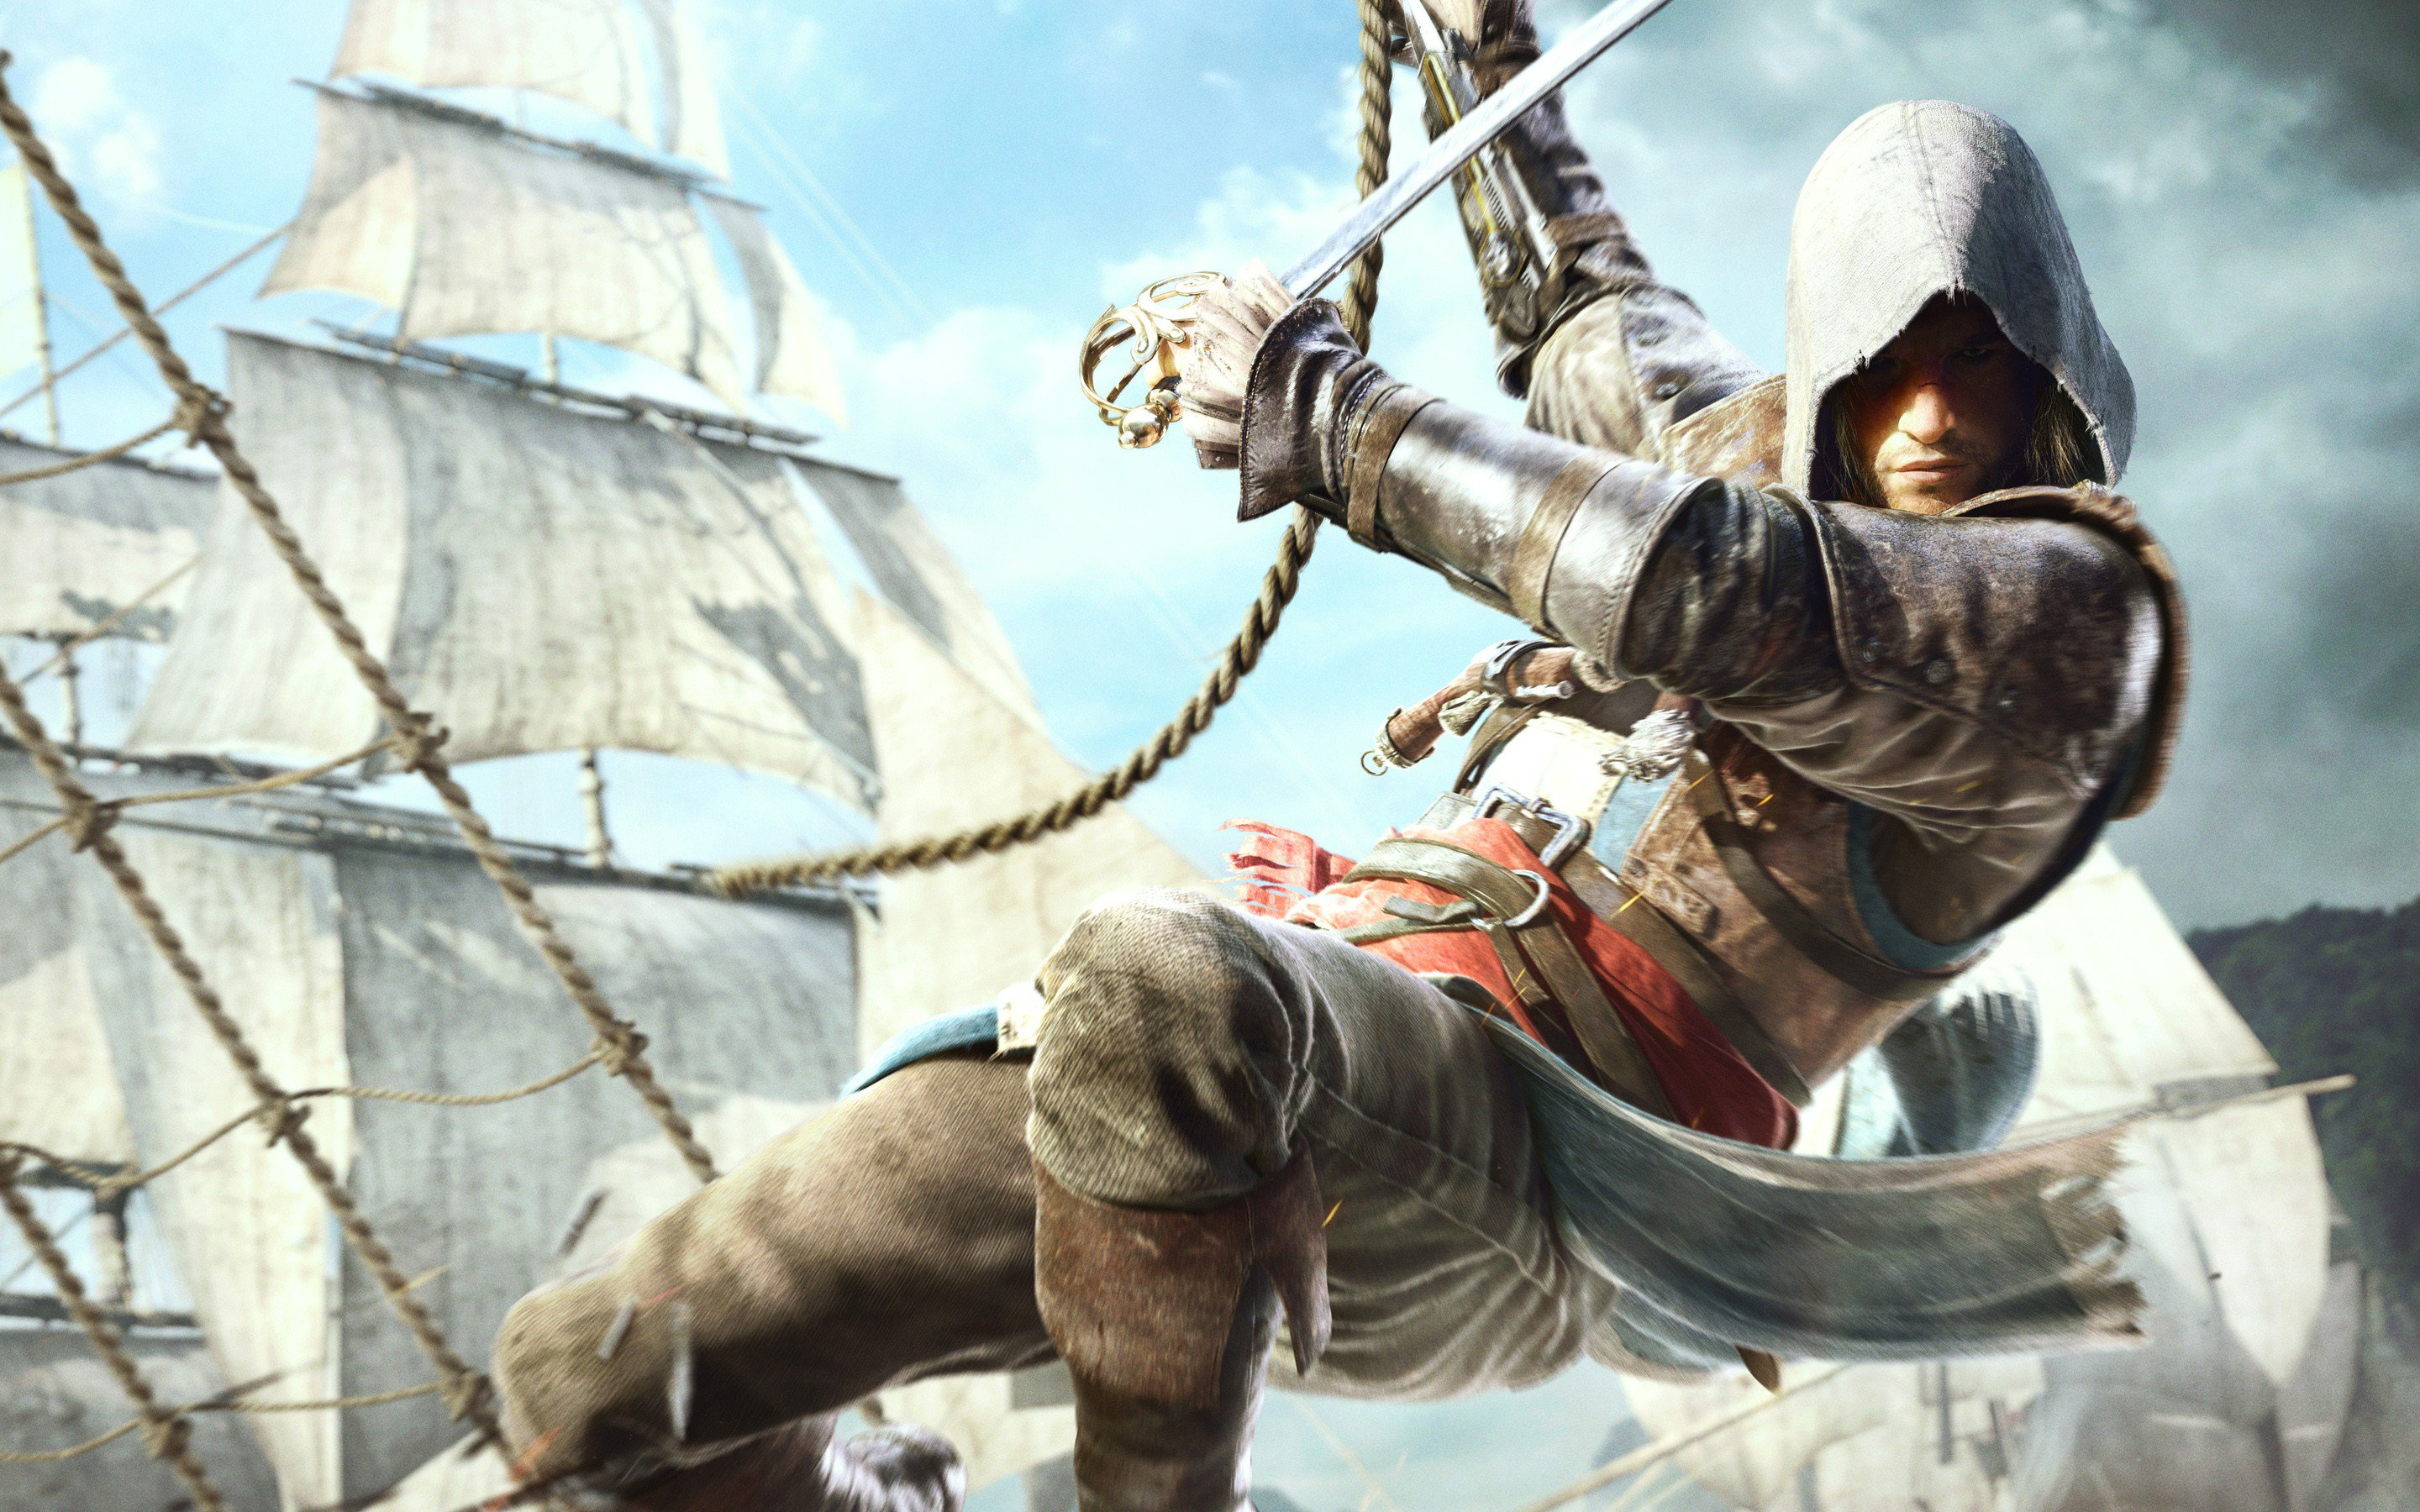 edward kenway in assassins creed 4 hd games 4k